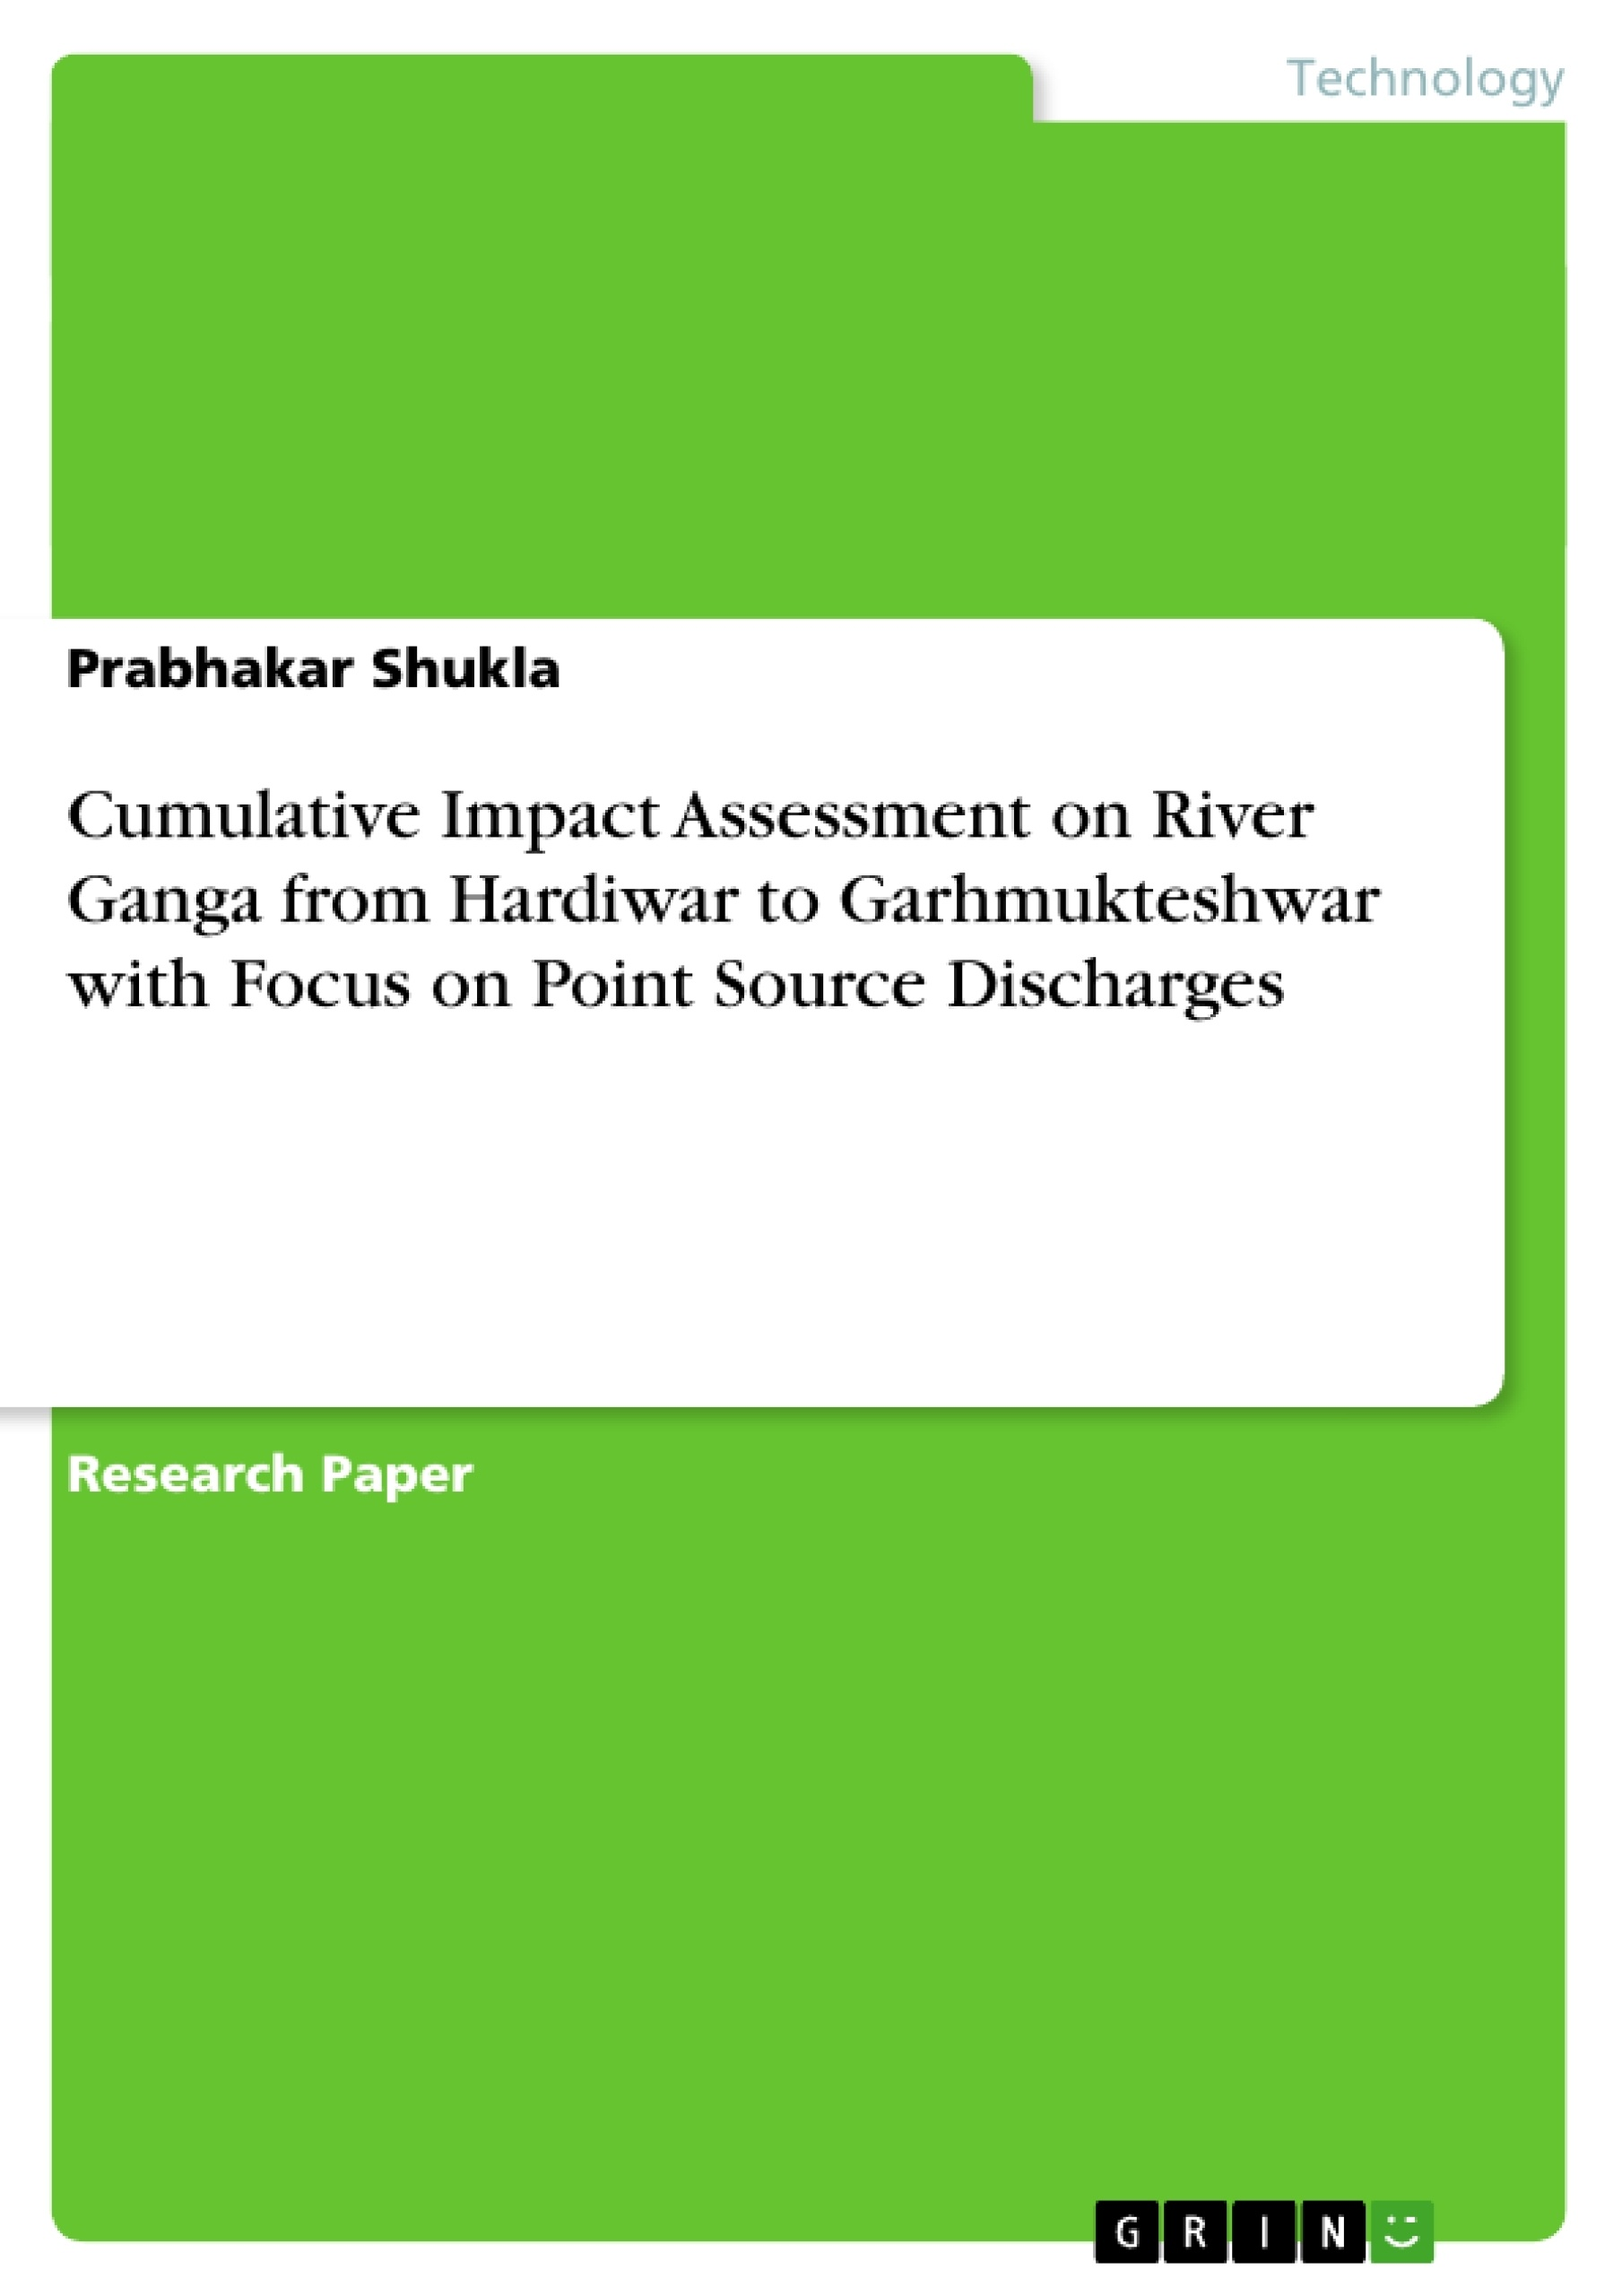 Title: Cumulative Impact Assessment on River Ganga from Hardiwar to Garhmukteshwar with Focus on Point Source Discharges